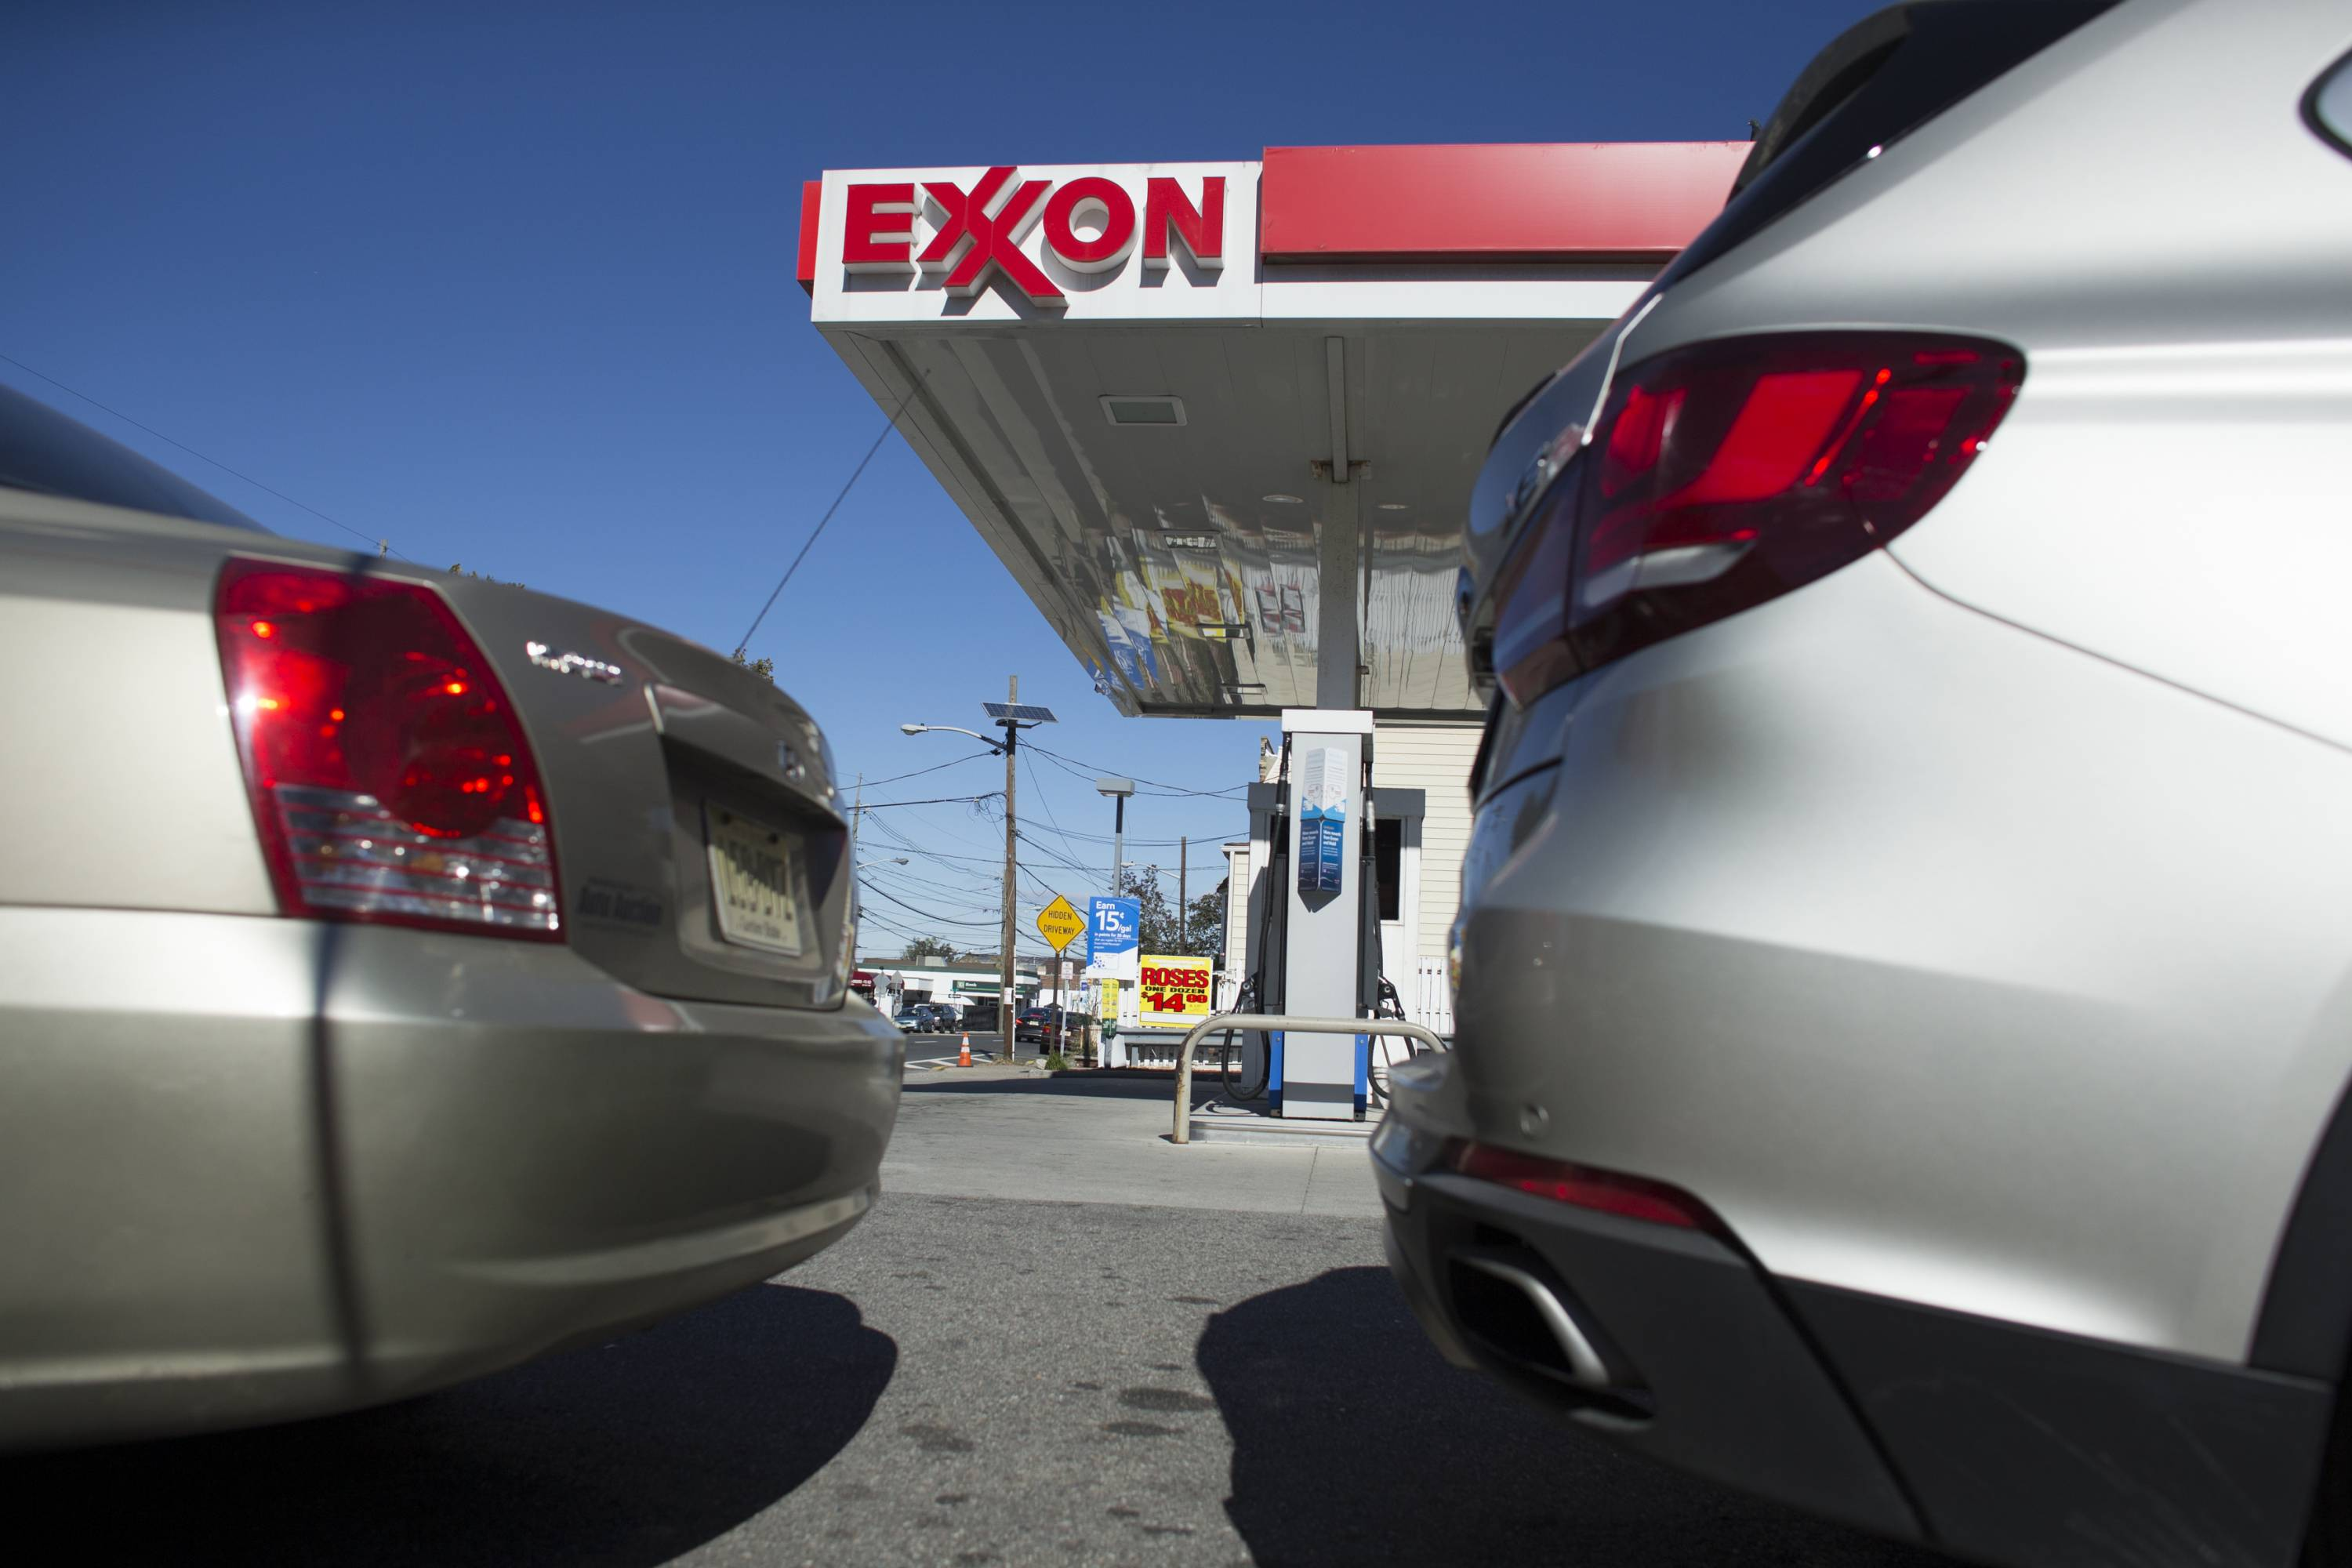 New York Attorney General sues Exxon alleging climate-change deception